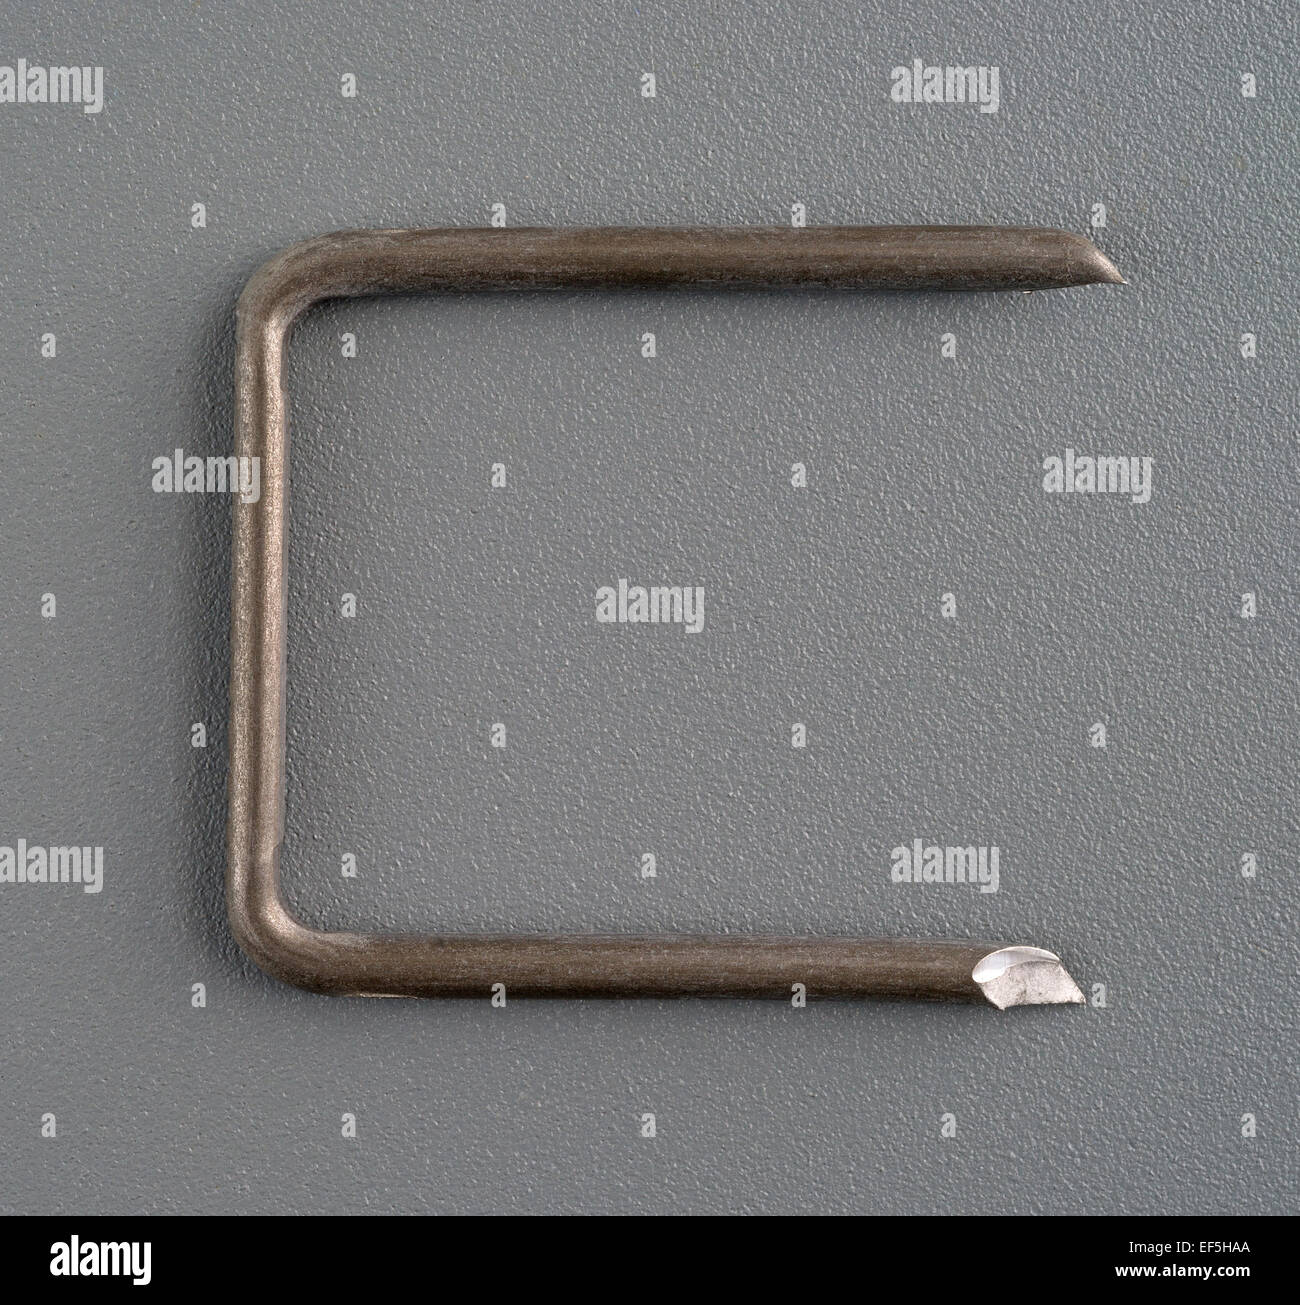 a large electrical cable tack for heavy gauge wiring on a gray background